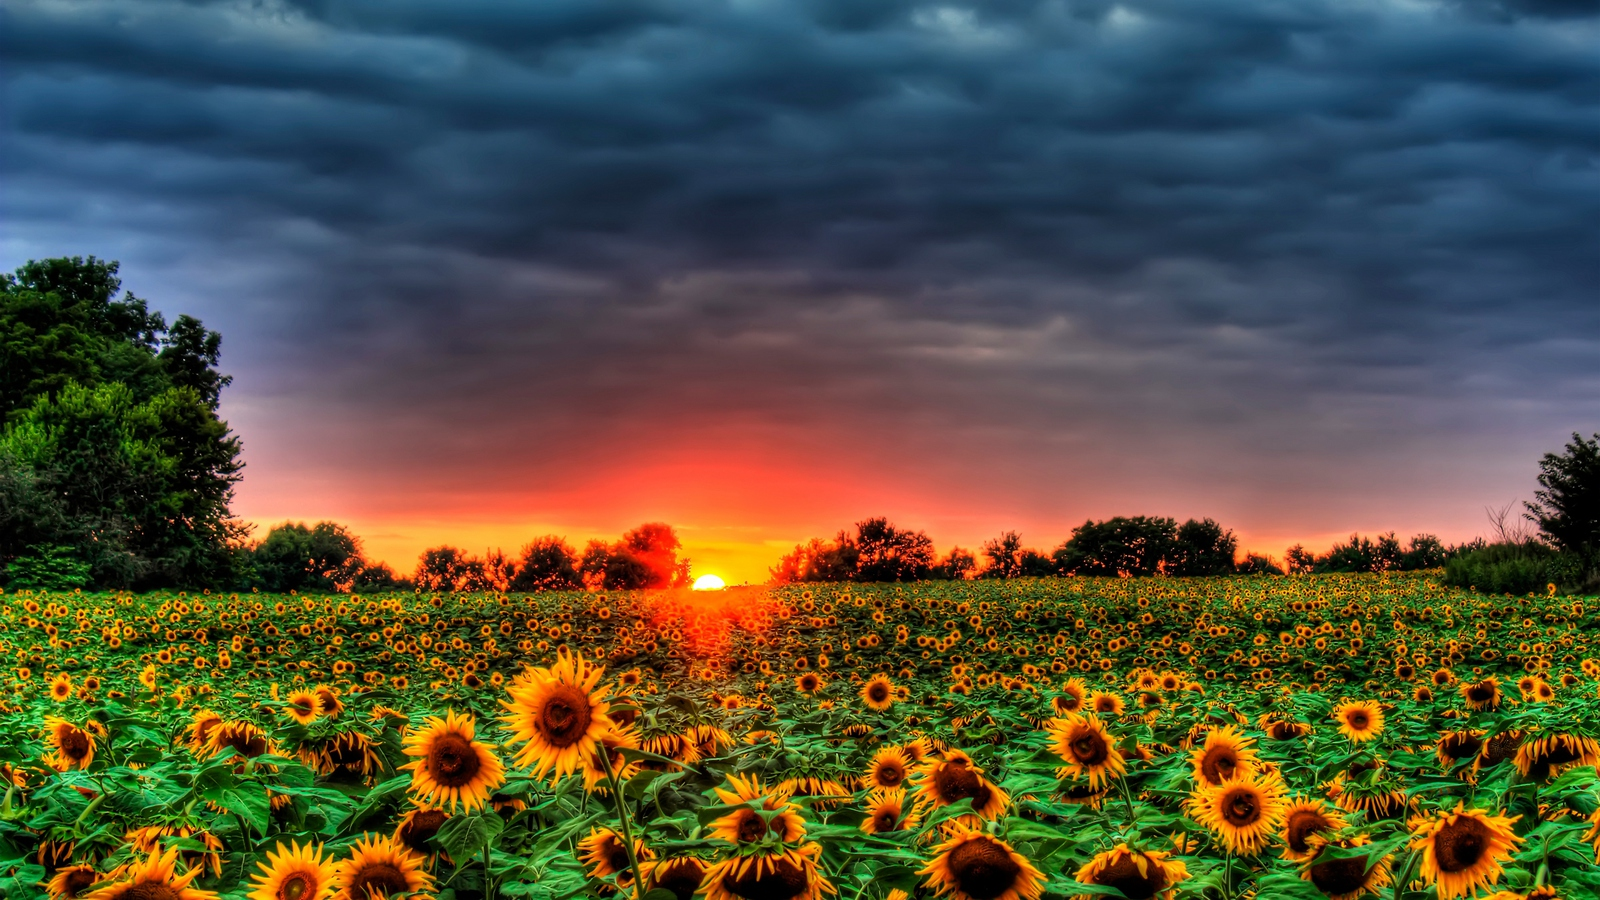 Sunflowers Galore Wallpaper And Background Image